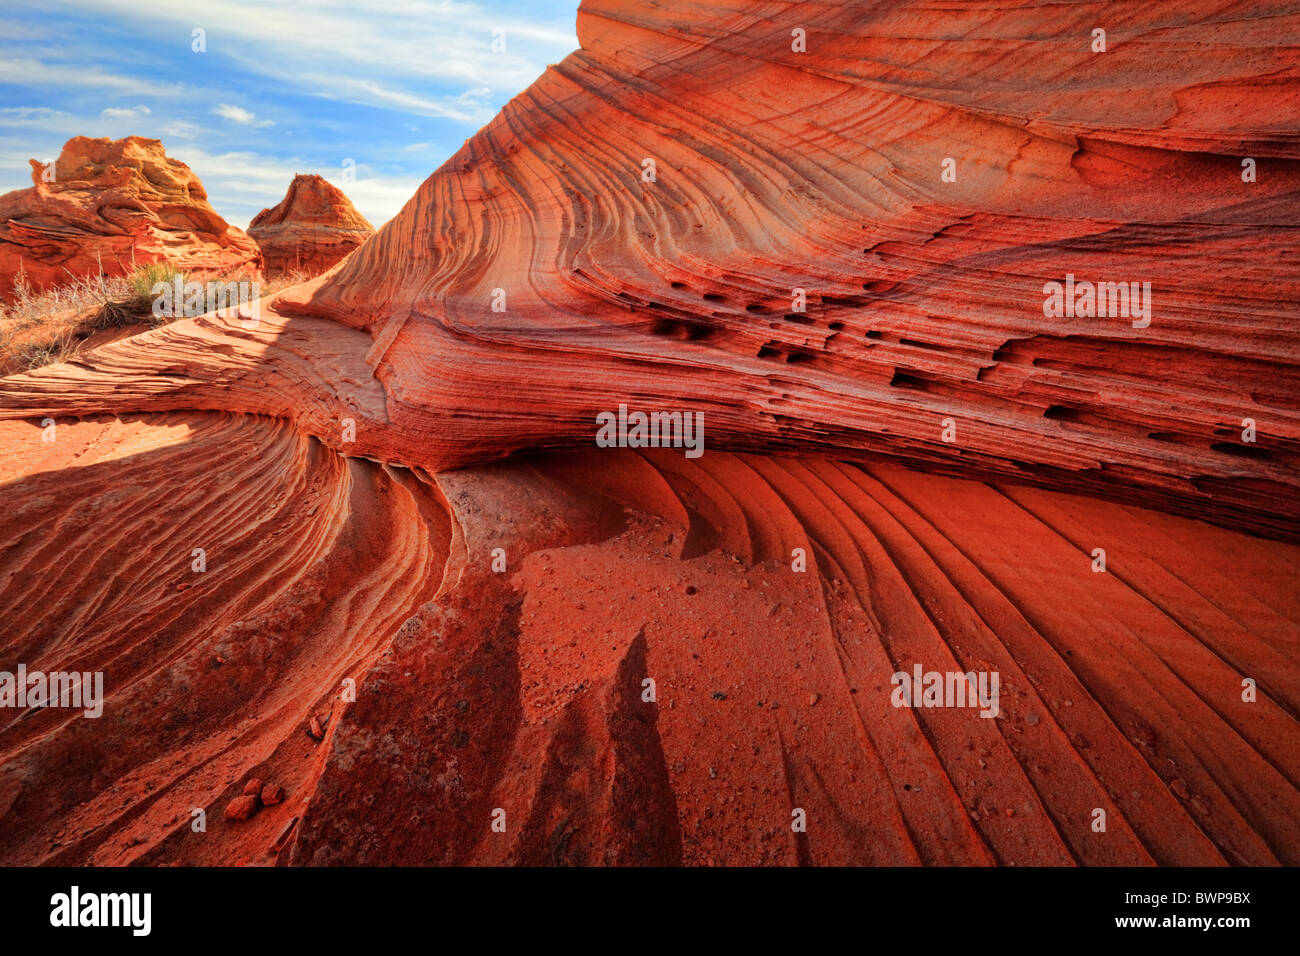 Rock formations in the Vermilion Cliffs National Monument, Arizona - Stock Image